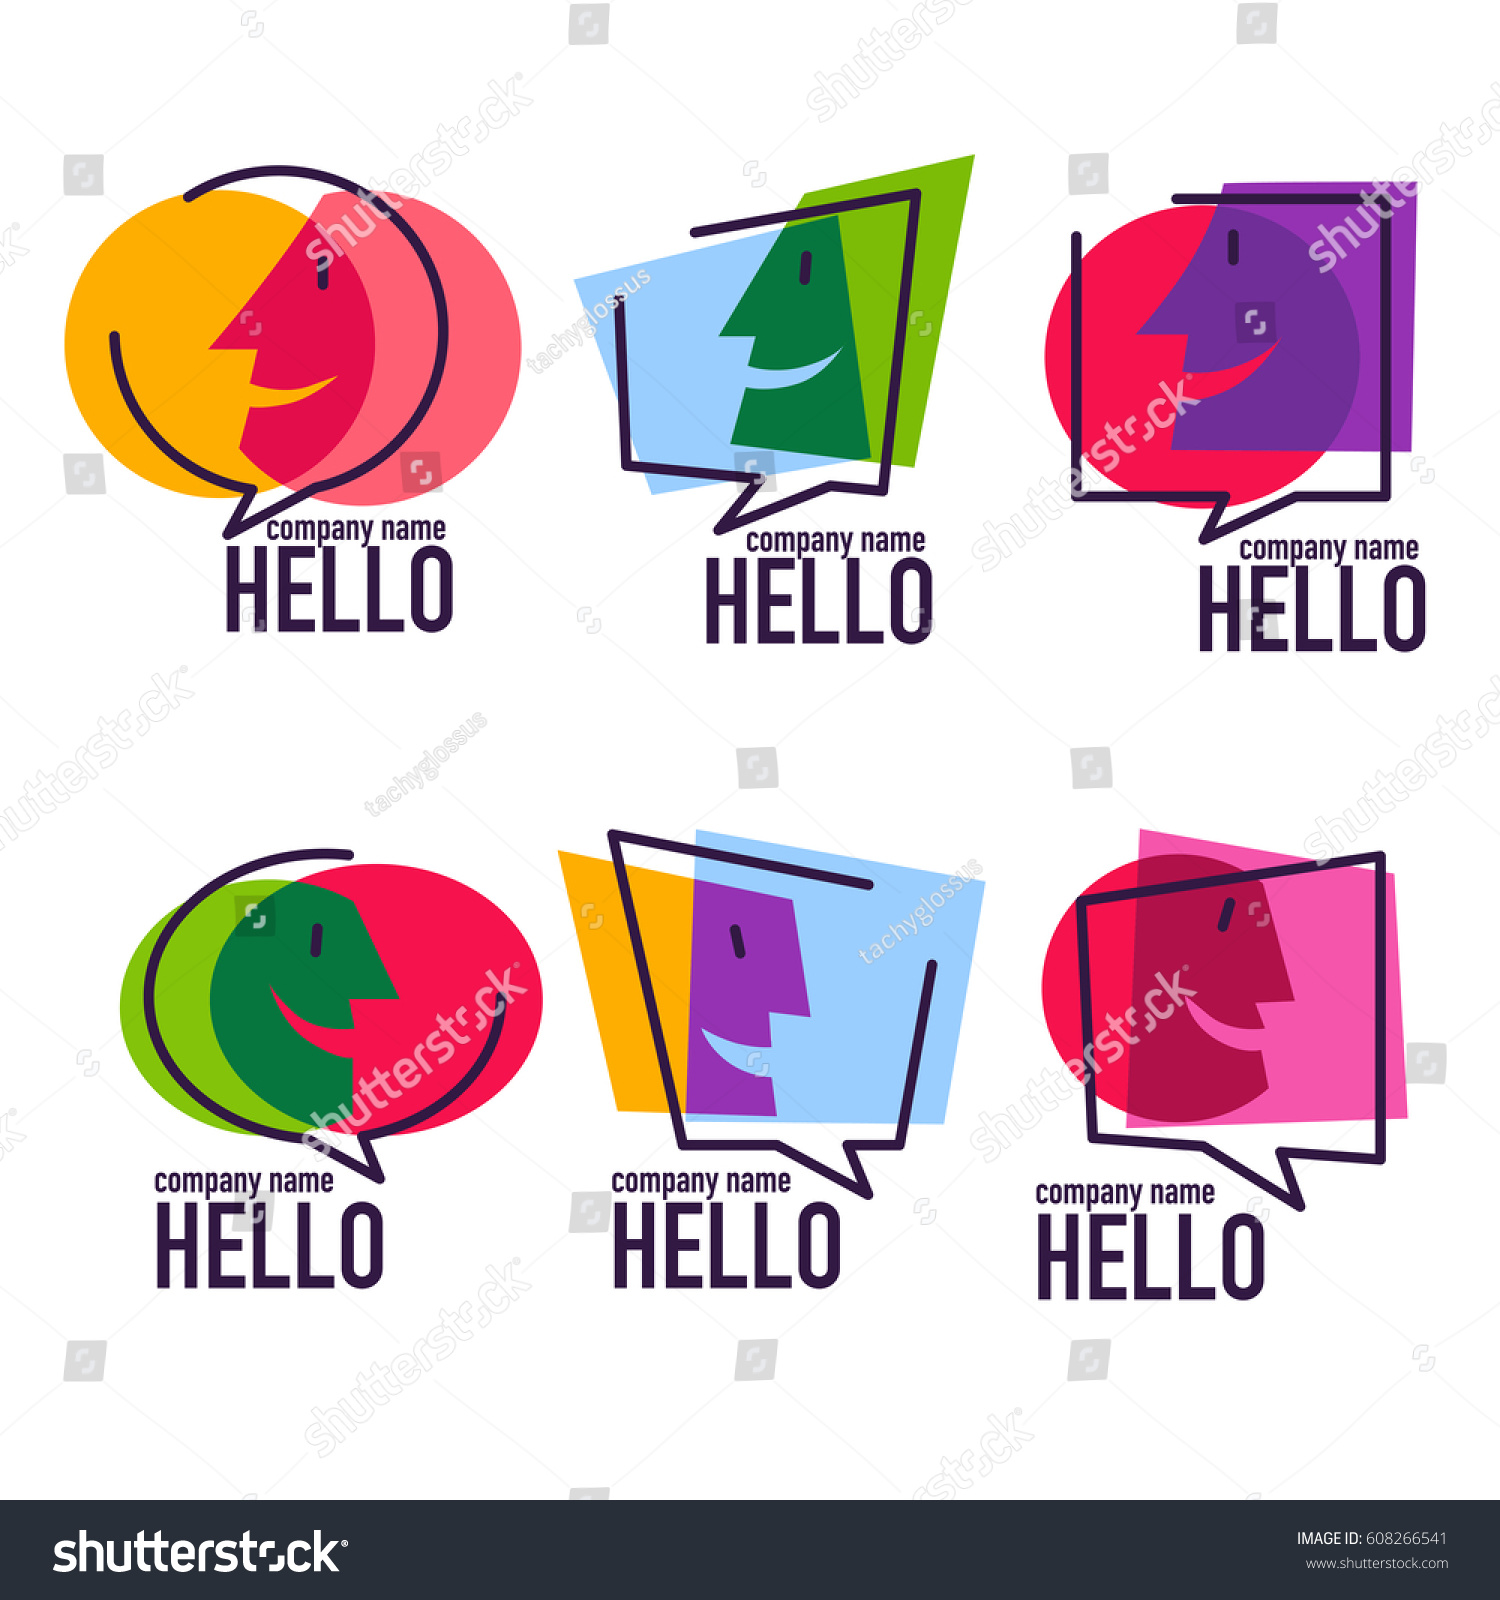 Stock images royalty free images vectors shutterstock similar images to vector collection of talking speaking chatting and communication logo icons signs and symbols biocorpaavc Gallery